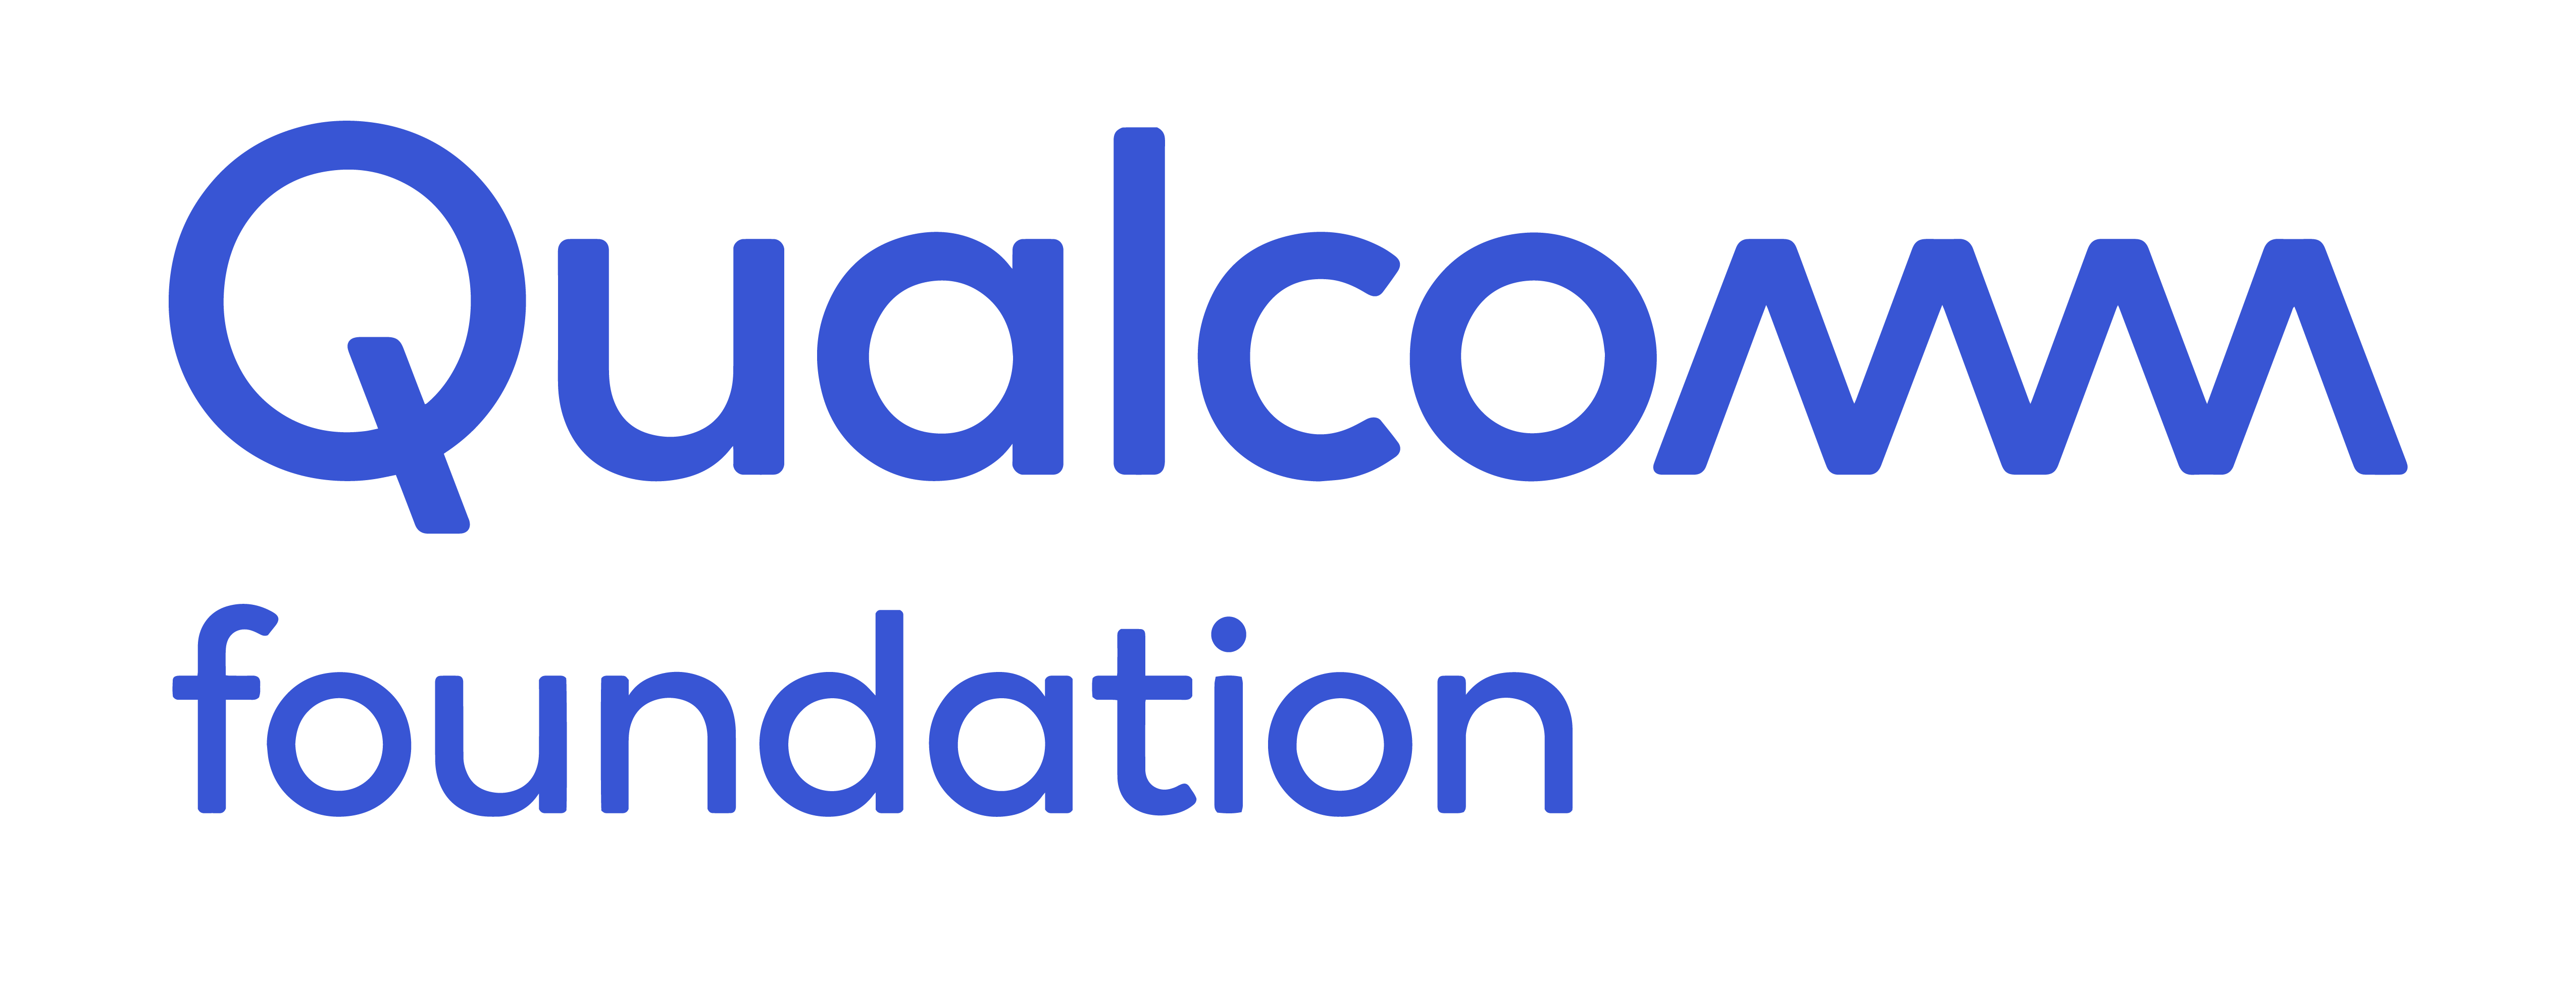 Qualcomm foundation logo